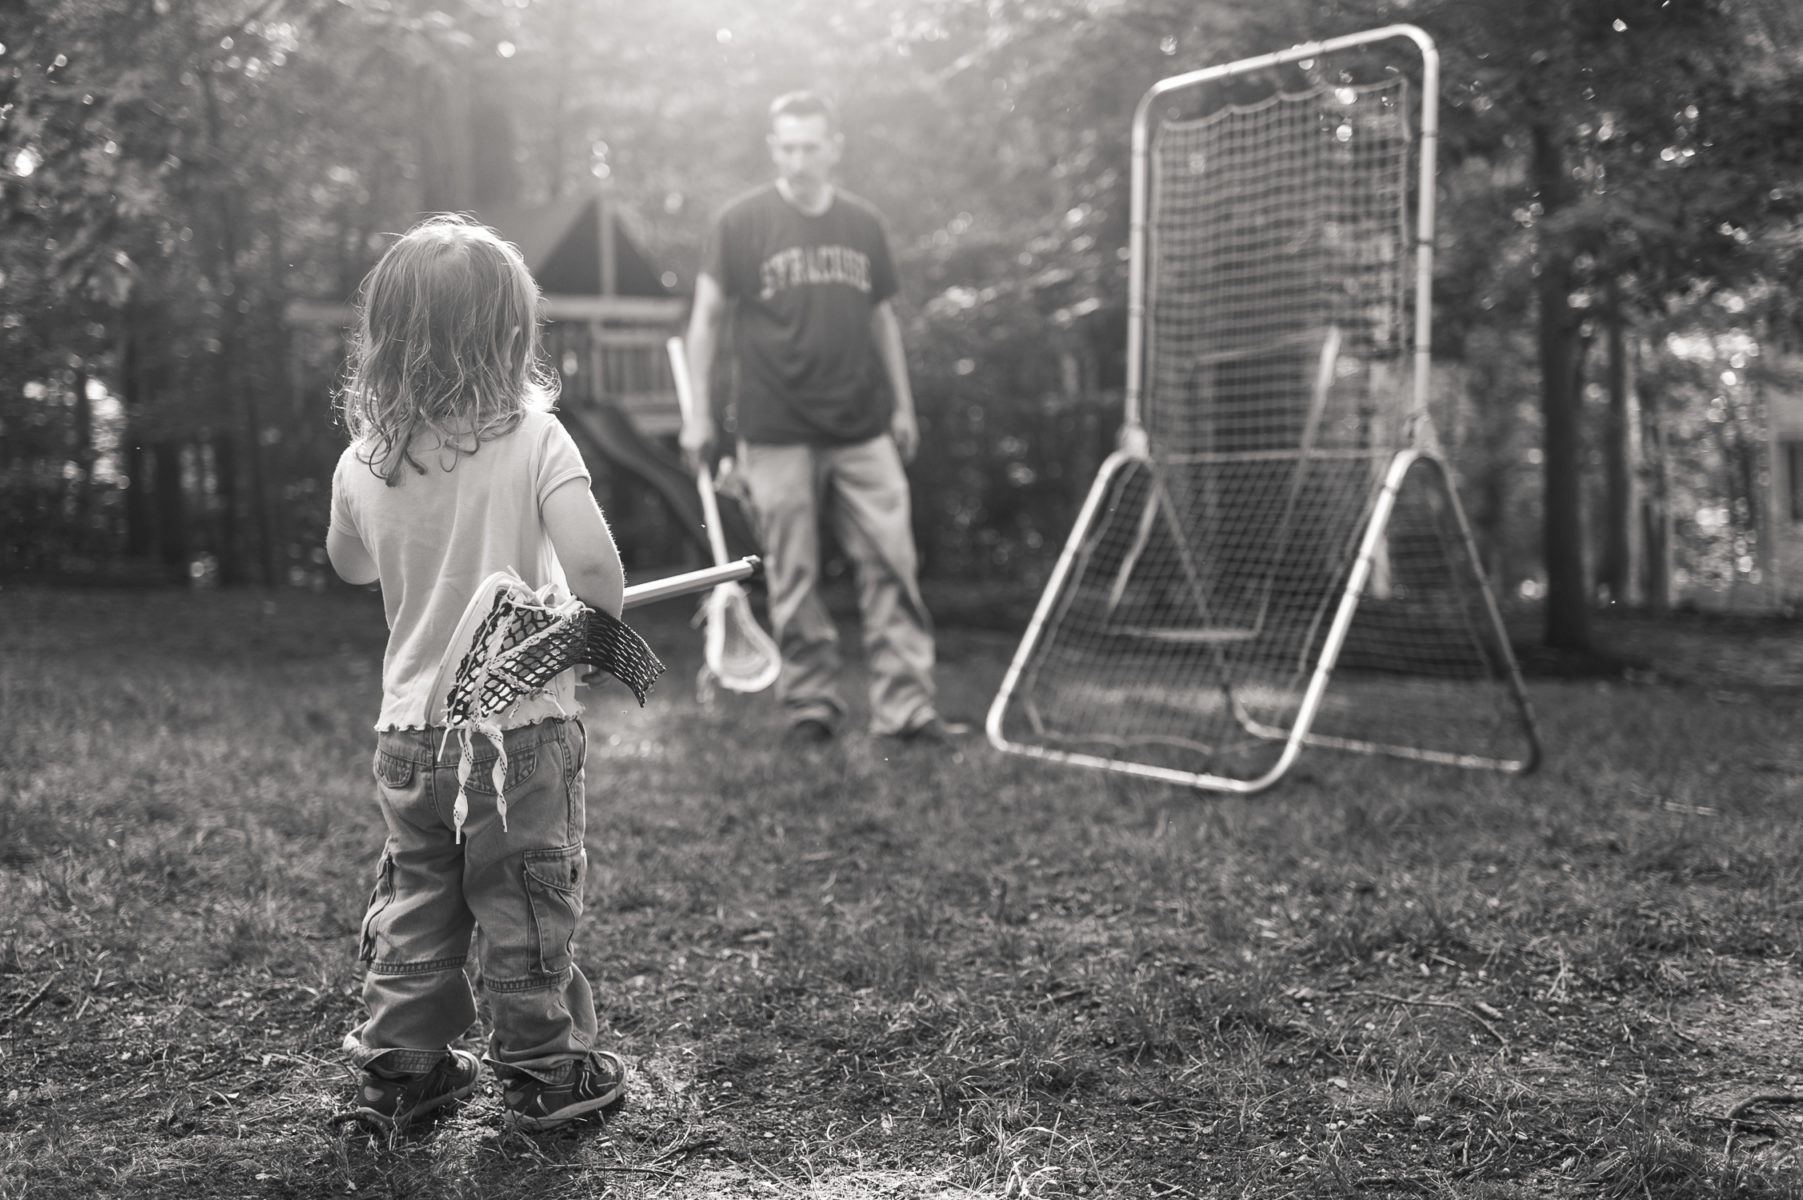 girl waiting to play lacrosse with her dad